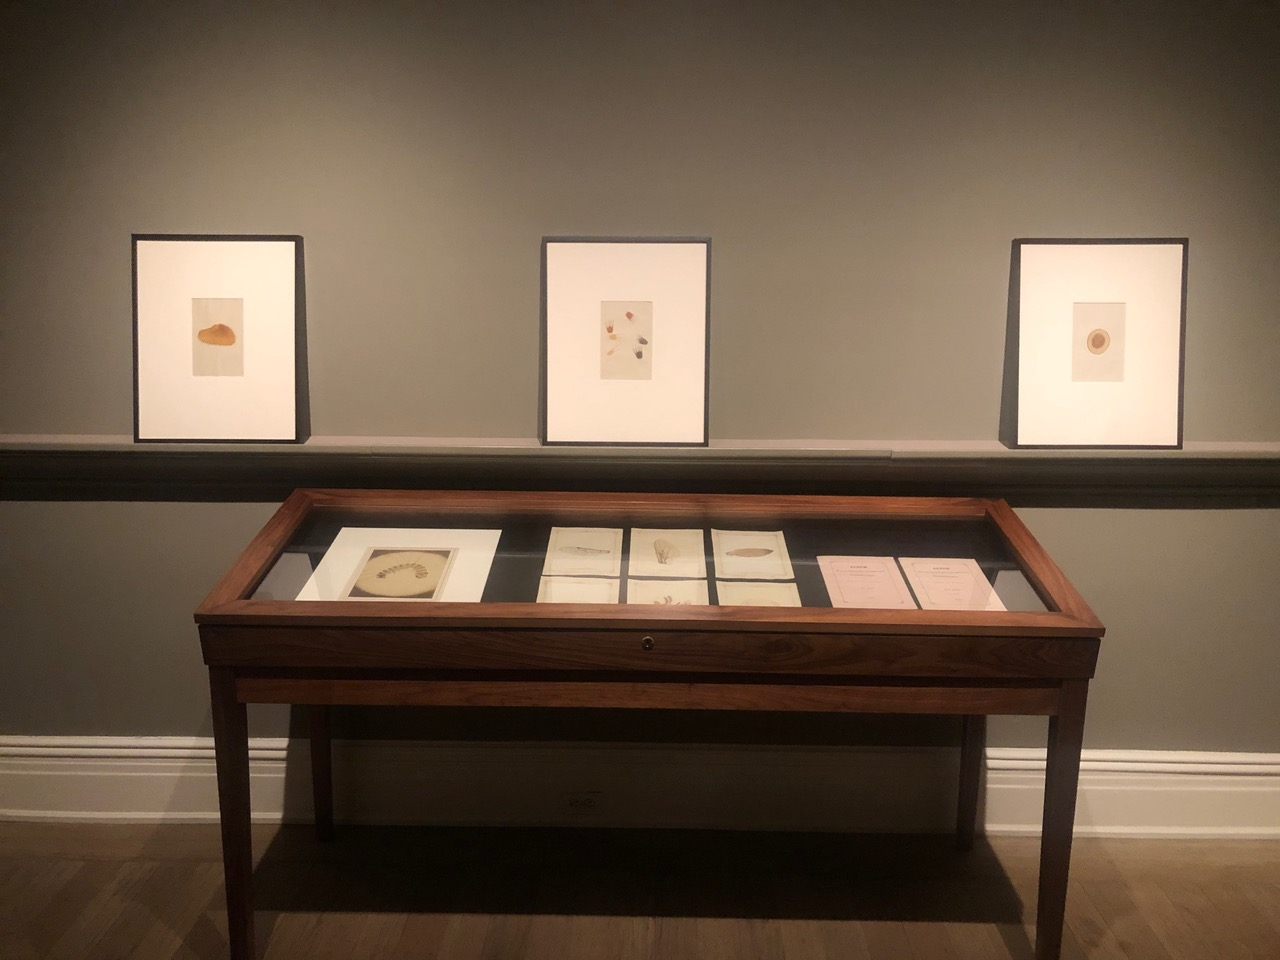 Critters: Hand-Colored Zoological Photomicrographs Installation View Five